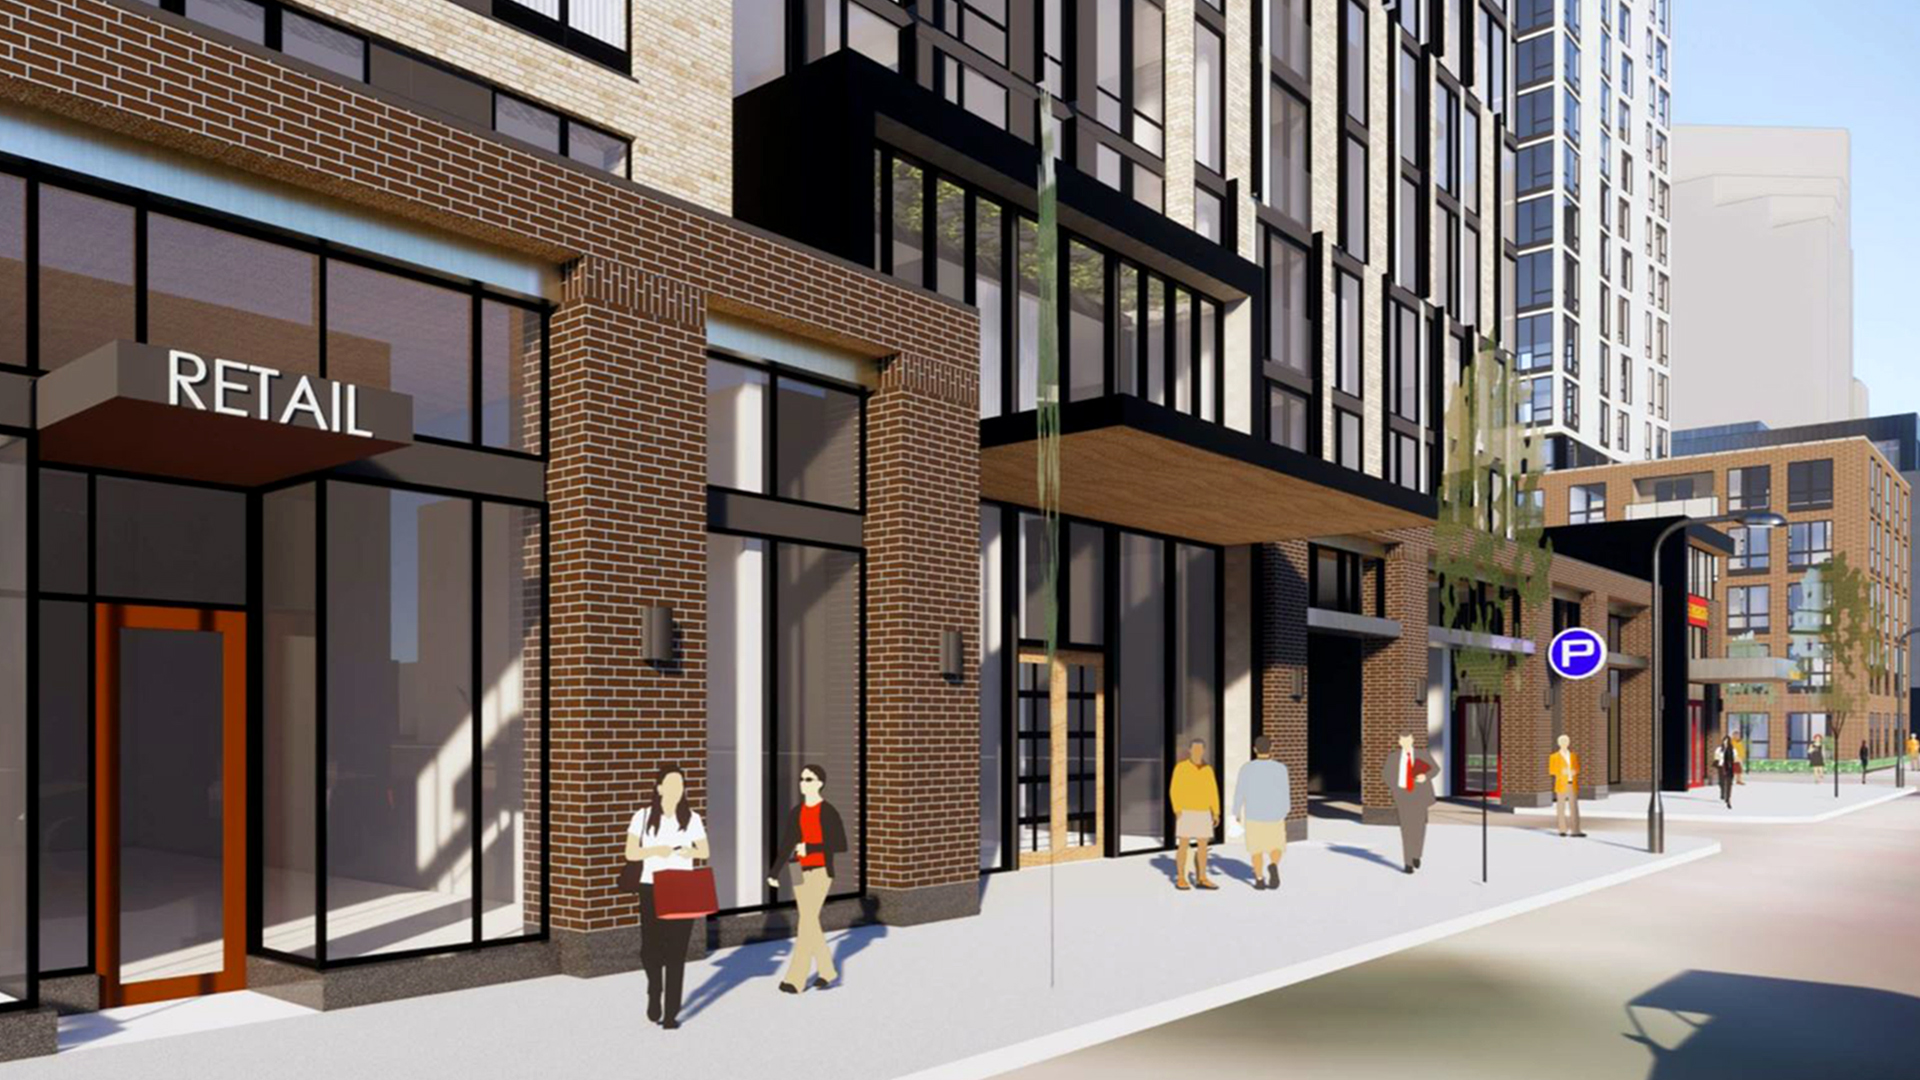 Wells Fargo 8th and Portland Minneapolis MN Residential Mixed Use Development Showing Ground Level Retail